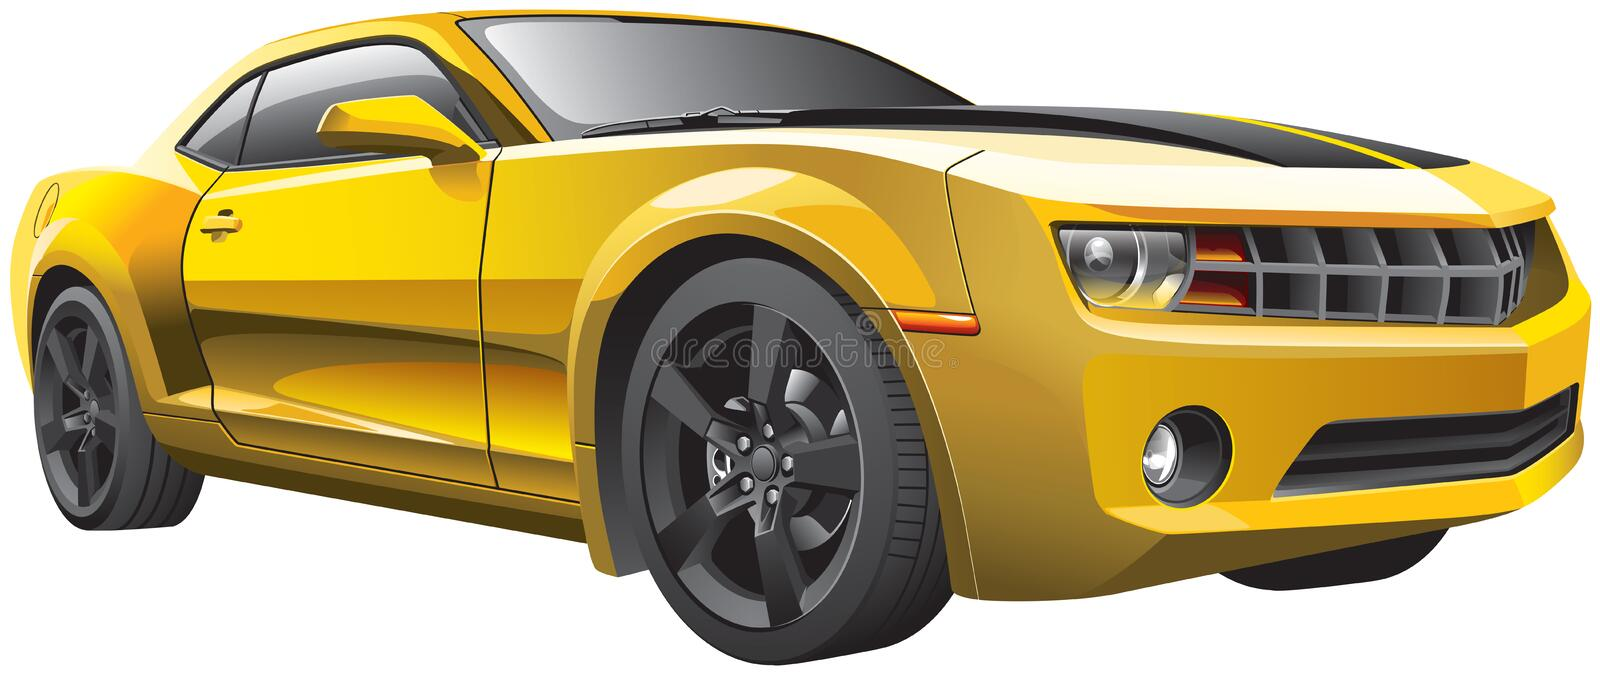 Yellow muscle car stock illustration